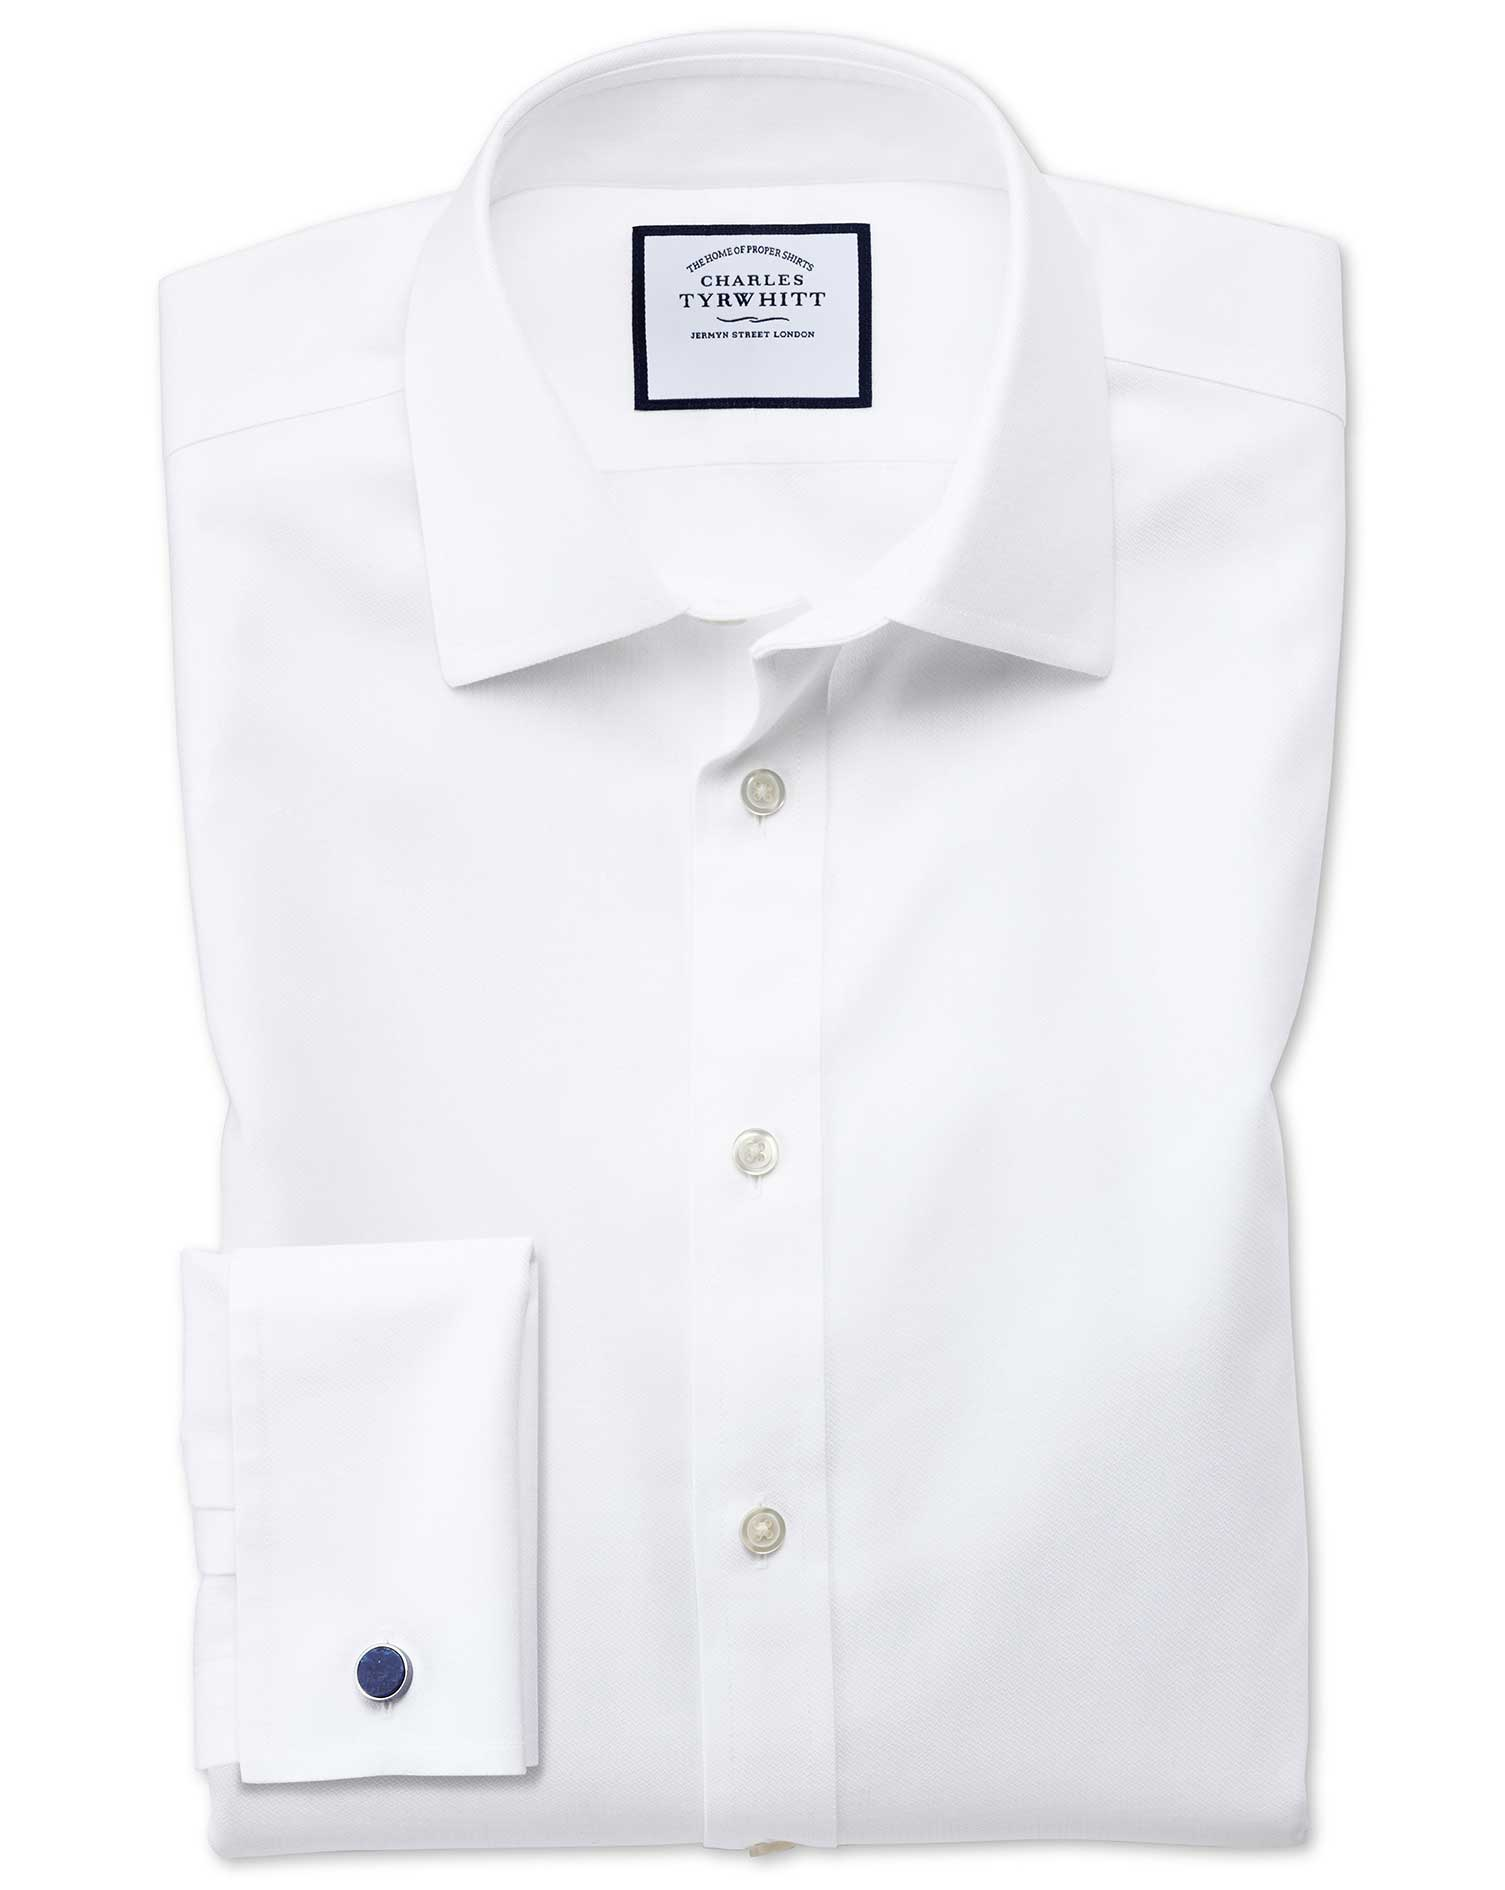 Classic Fit Non-Iron Step Weave White Cotton Formal Shirt Single Cuff Size 18/35 by Charles Tyrwhitt